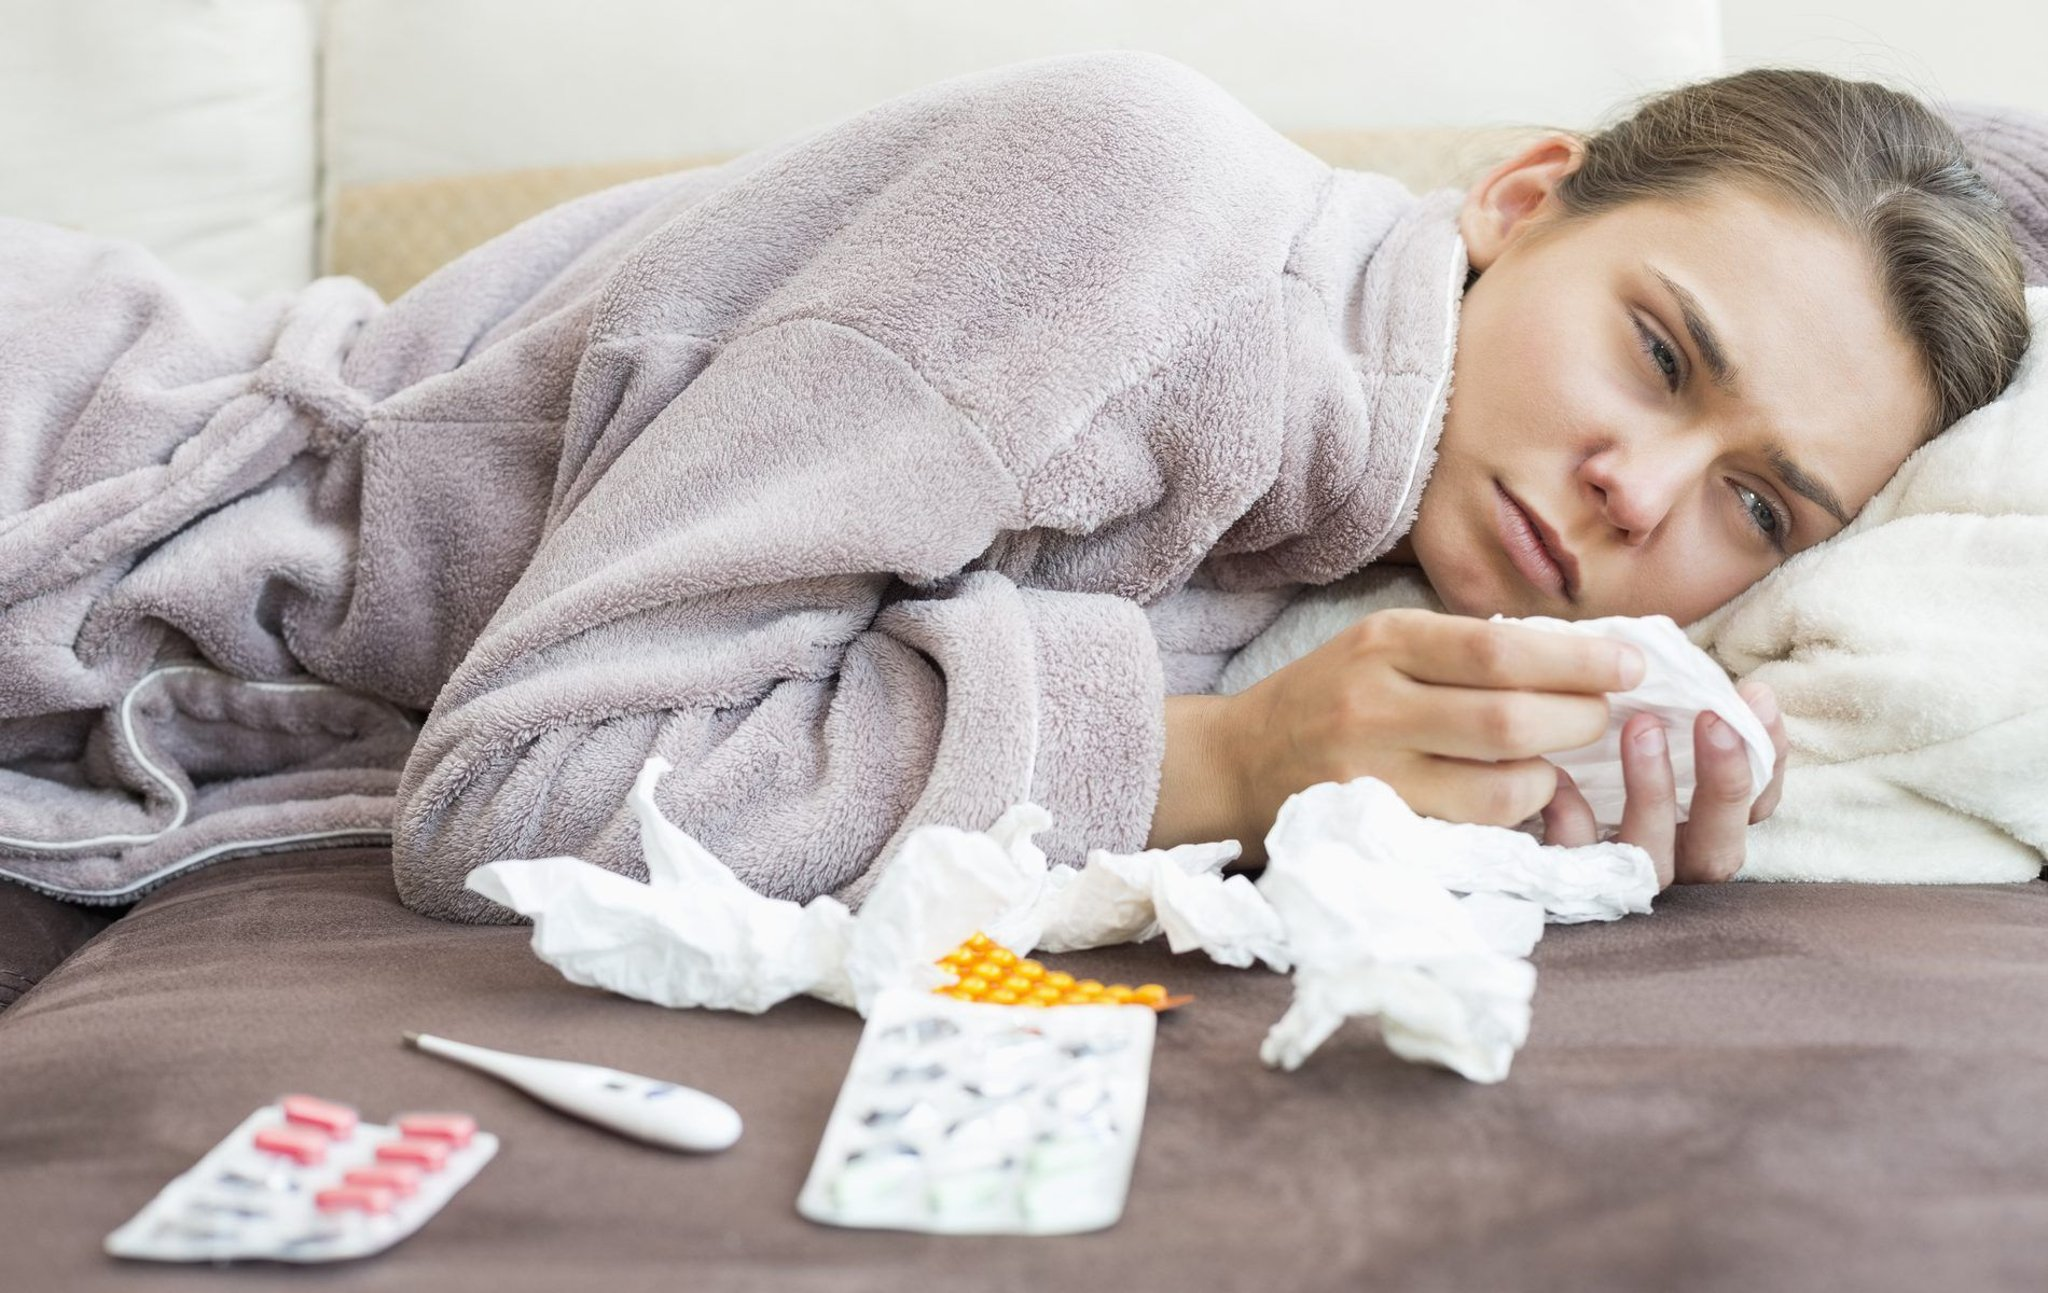 Symptoms of 'super cold' spreading across UK and how to tell if it's Covid